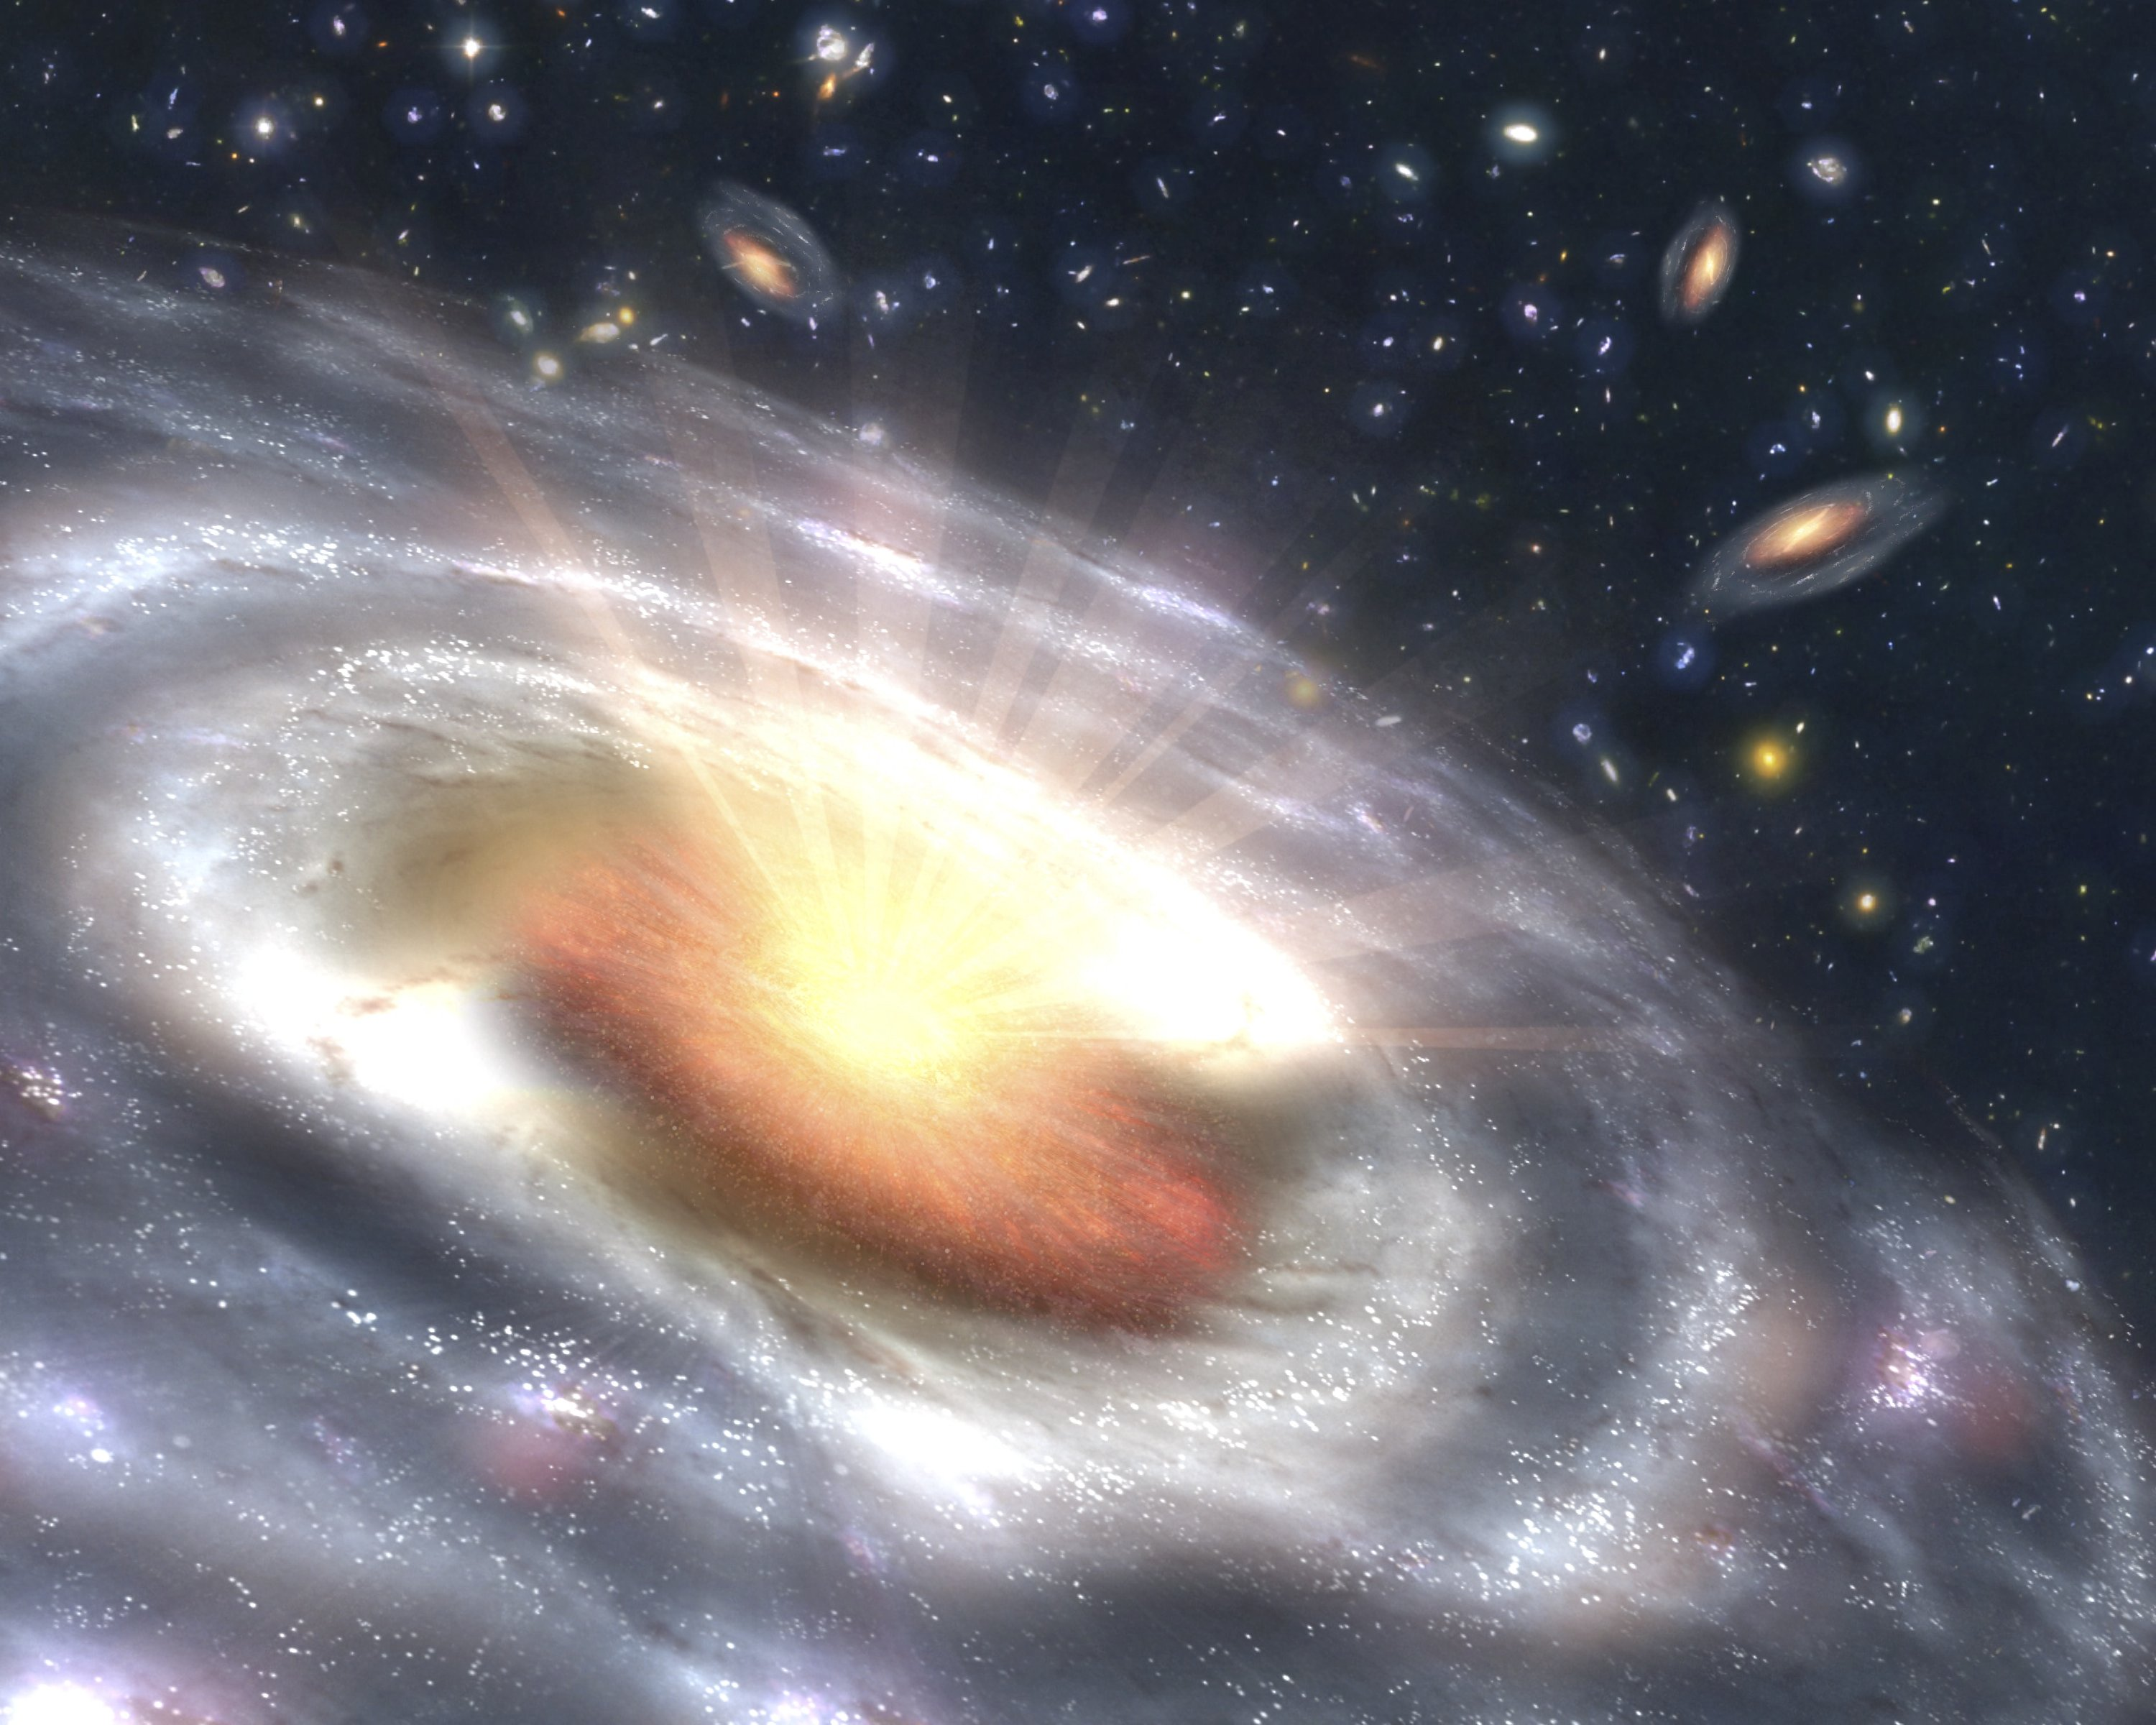 This is an artist's concept of a quasar (bright area with rays) embedded in the center of a galaxy